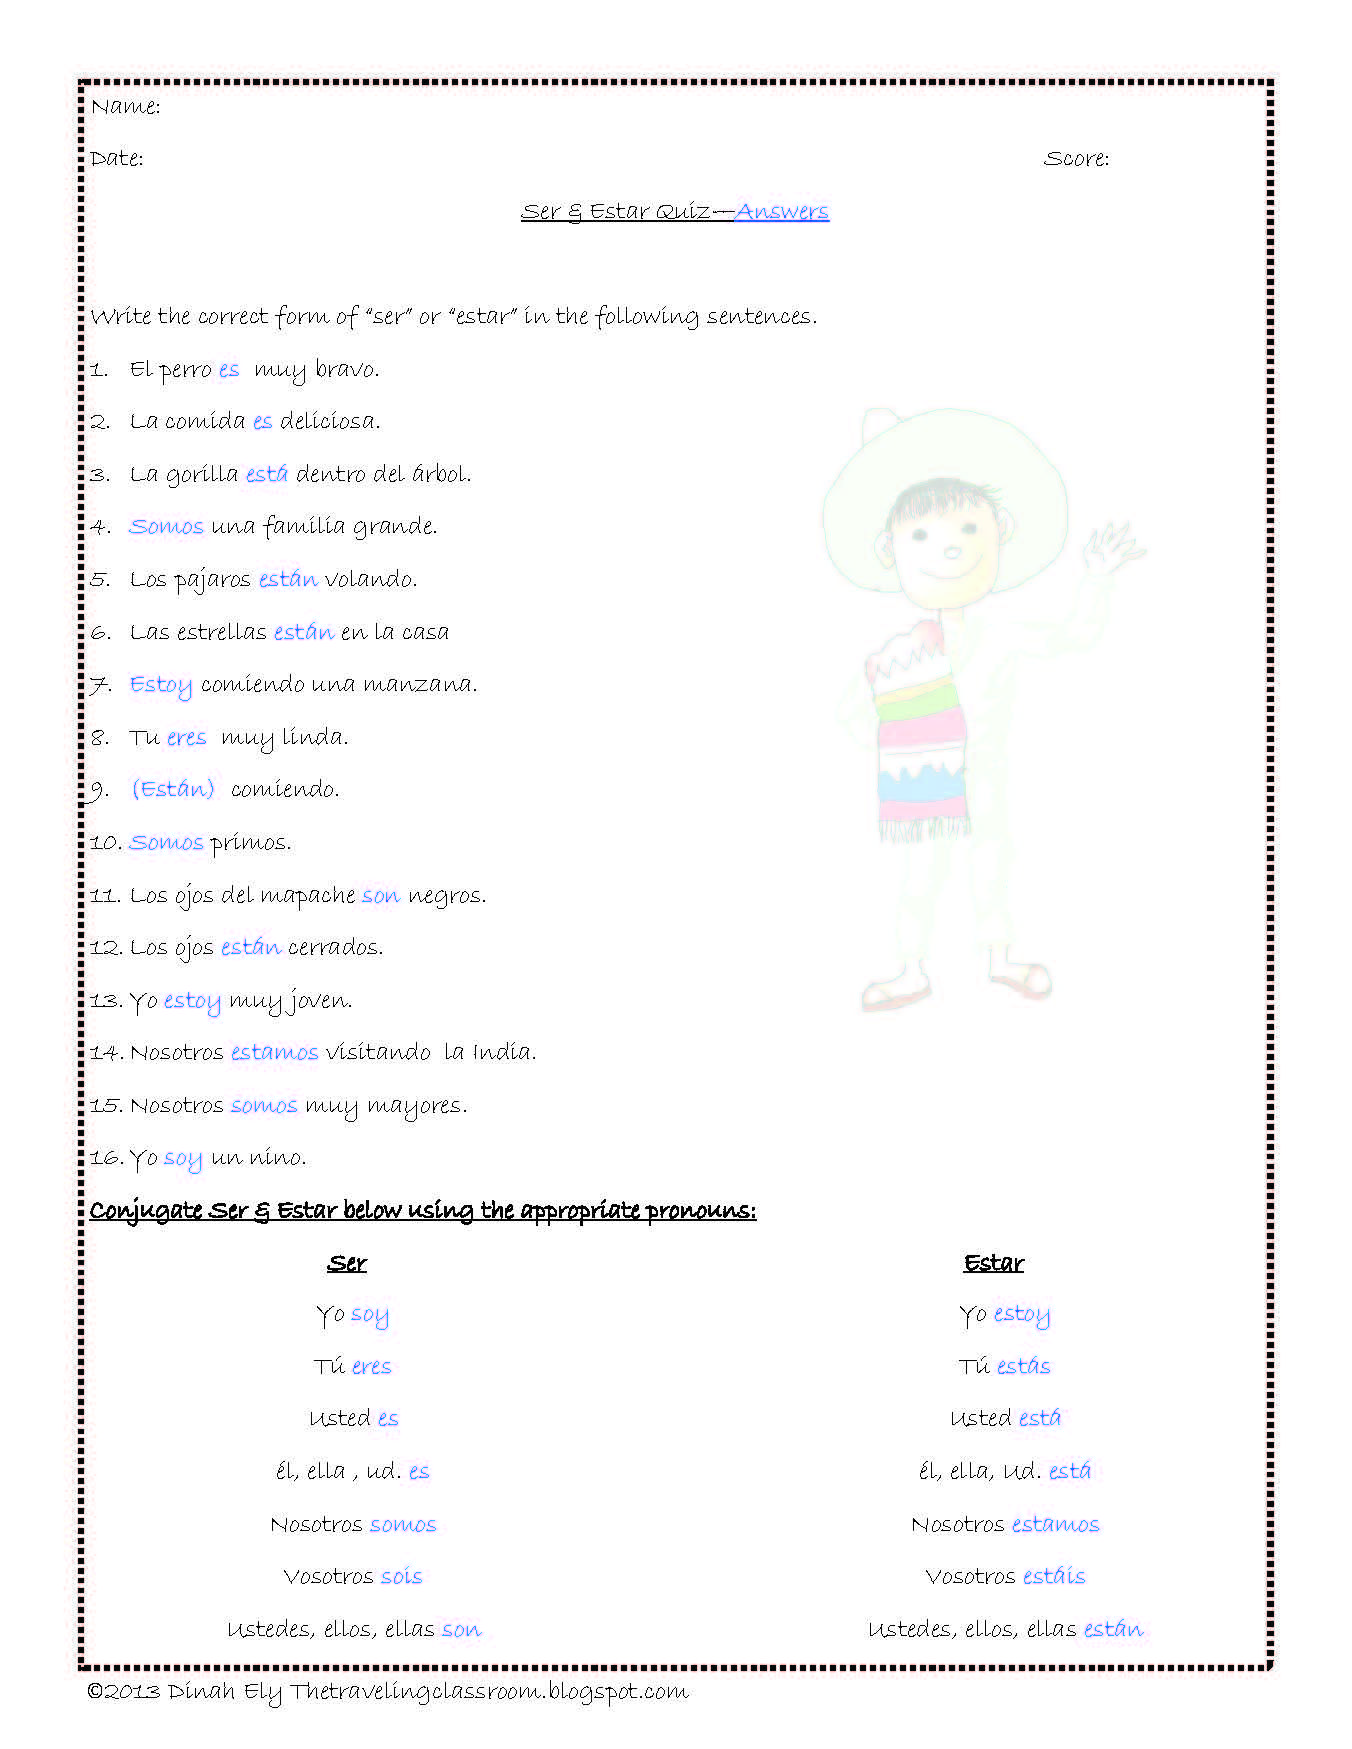 Ser Estar Y Tener Worksheet Answers